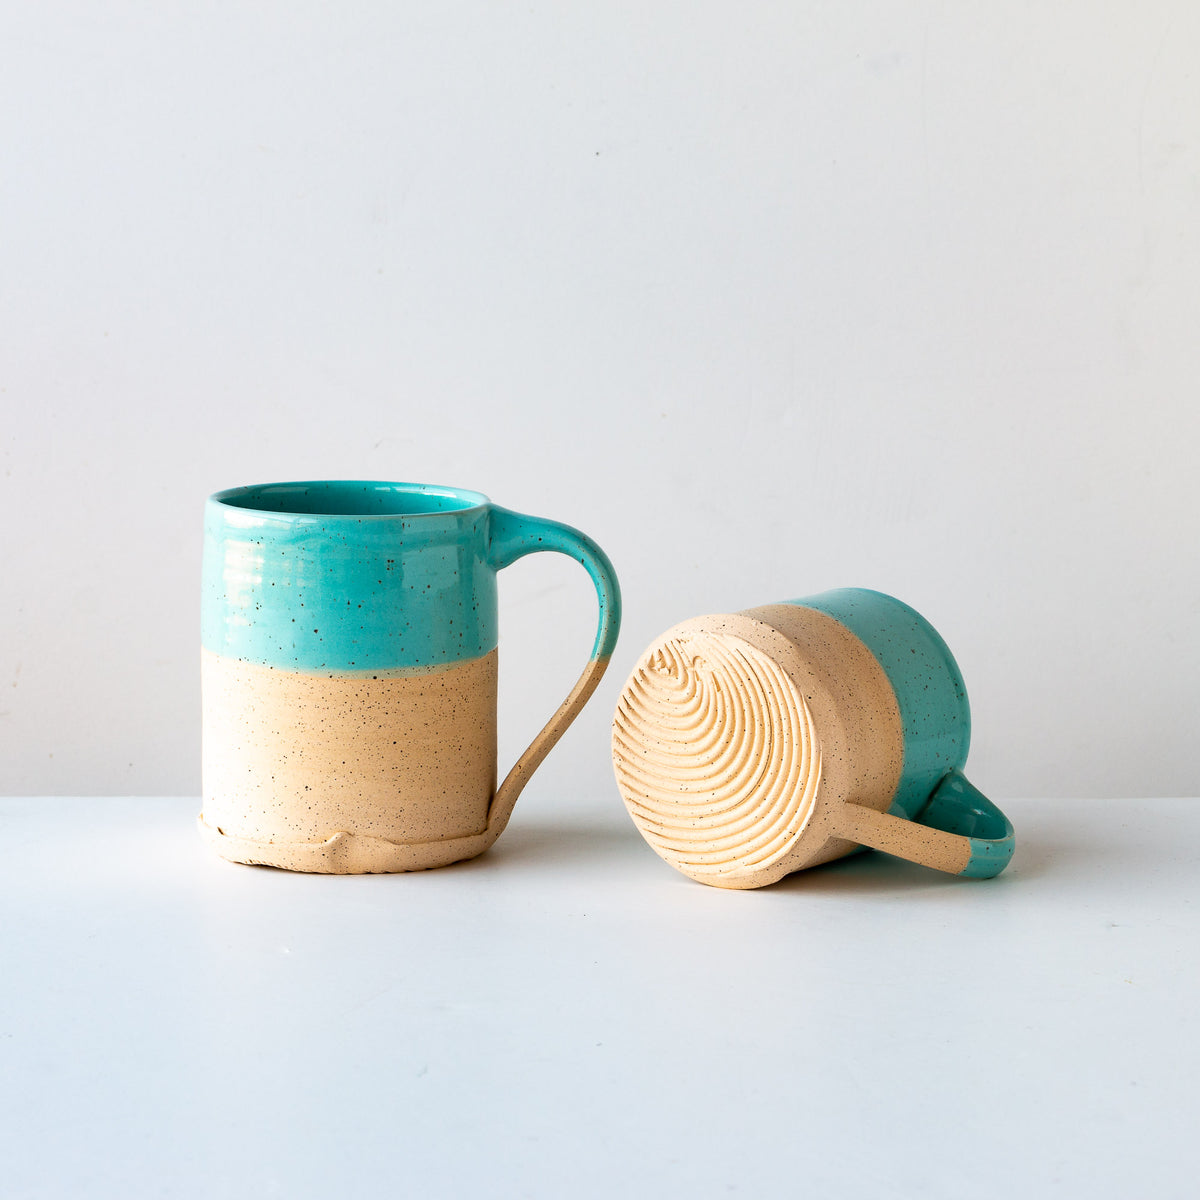 Turquoise Glaze - Two Handcrafted Speckled Stoneware Large Mugs - Sold by Chic & Basta